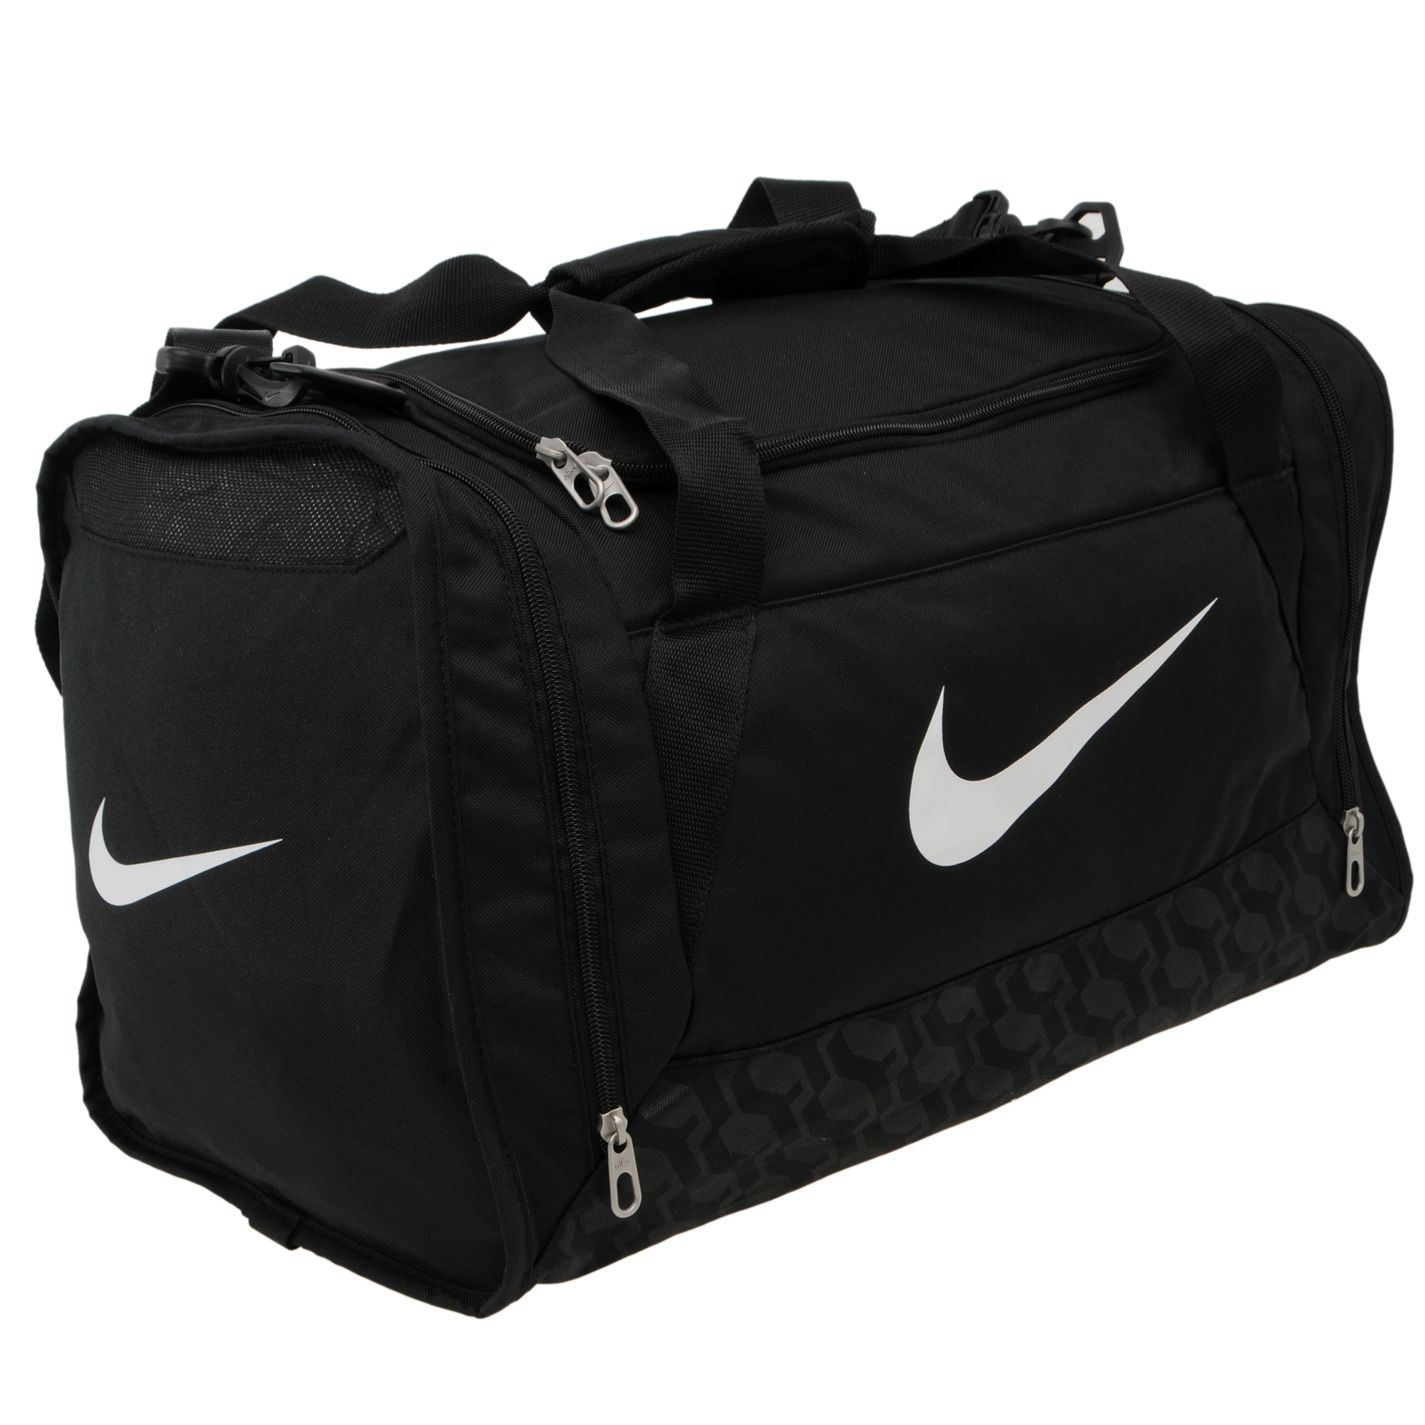 nike brasilia small grip bag black gym sports bag genuine ebay. Black Bedroom Furniture Sets. Home Design Ideas